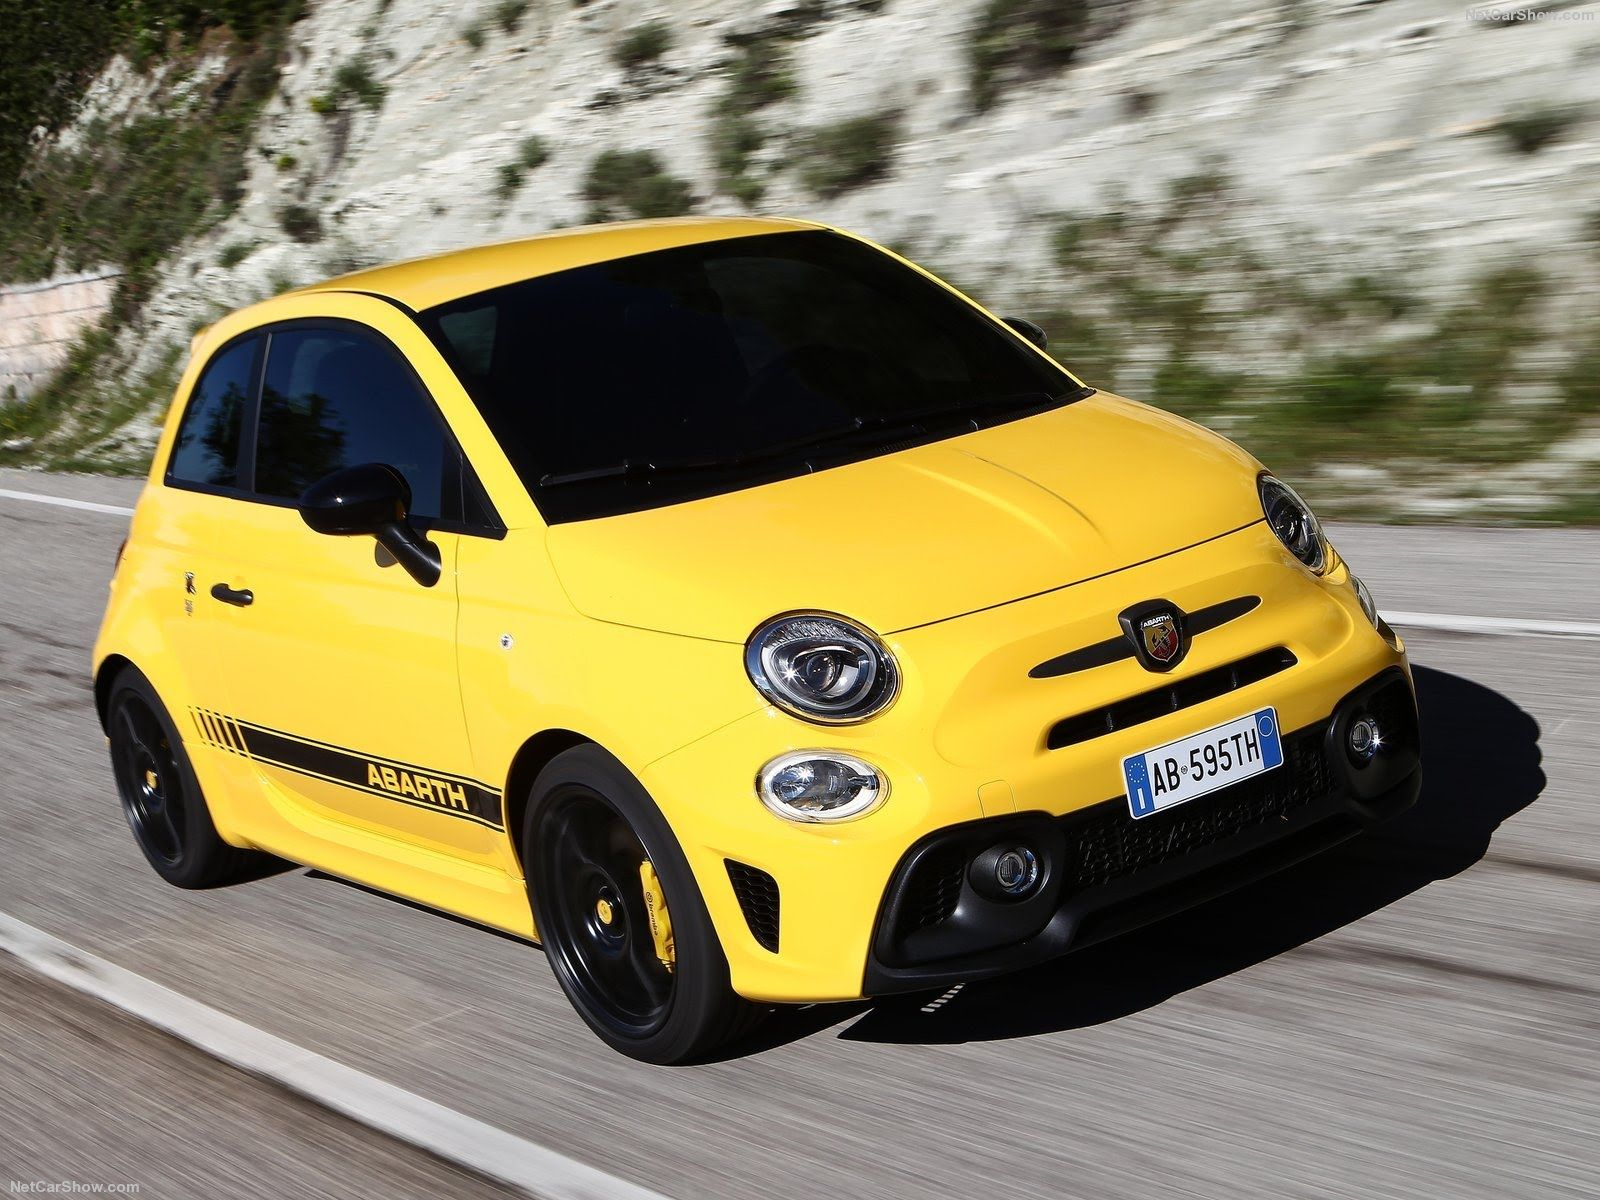 2017 Fiat 595 Abarth 1 4 T Jet Abarth Entry Level Model